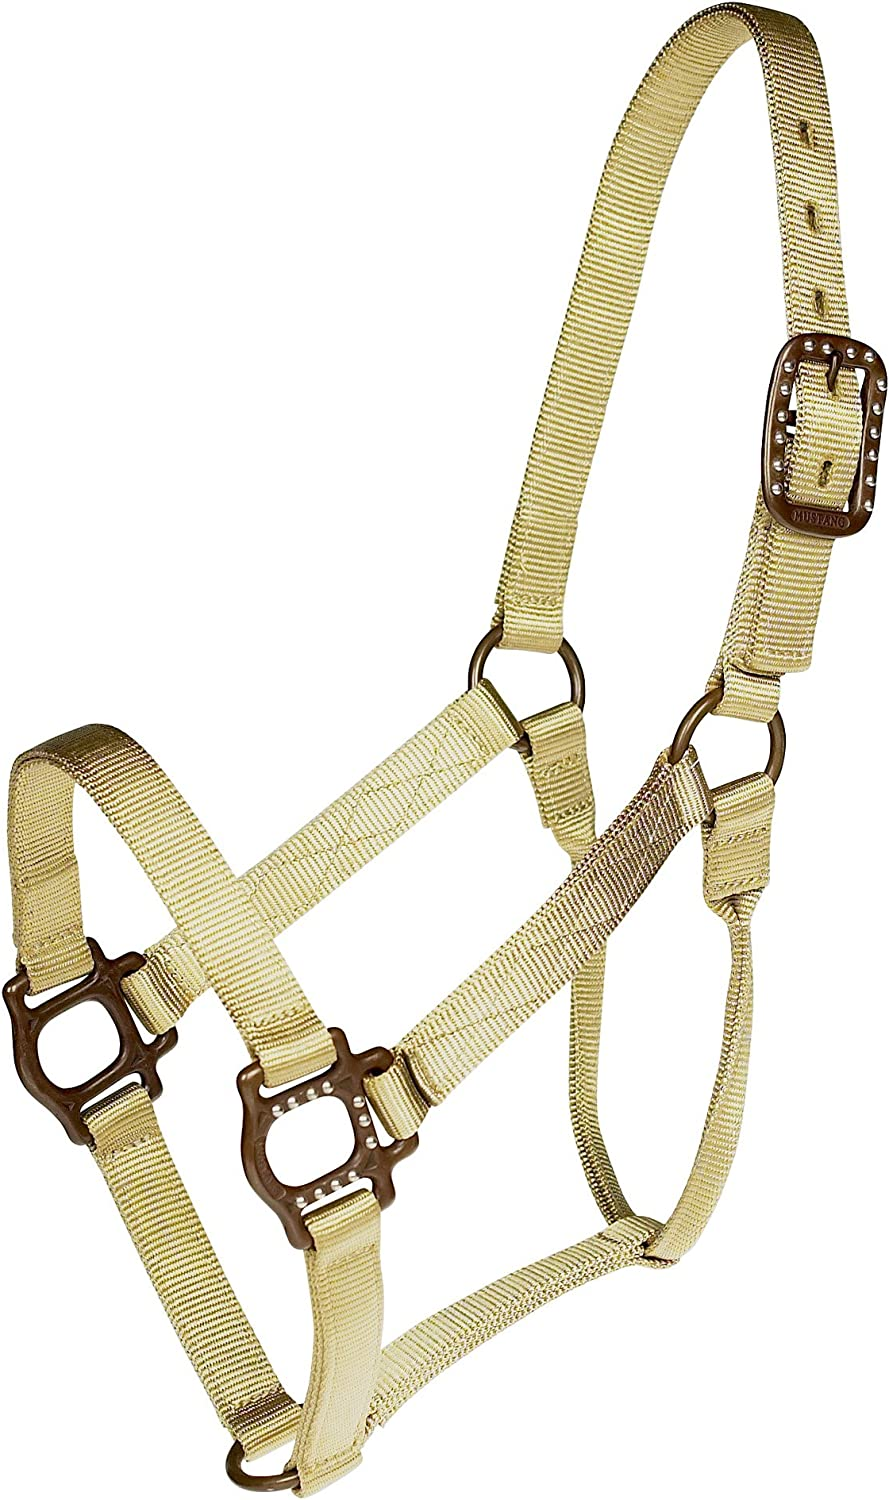 Mustang Popular standard Manufacturing Company Antique Dot Discount is also underway Halter